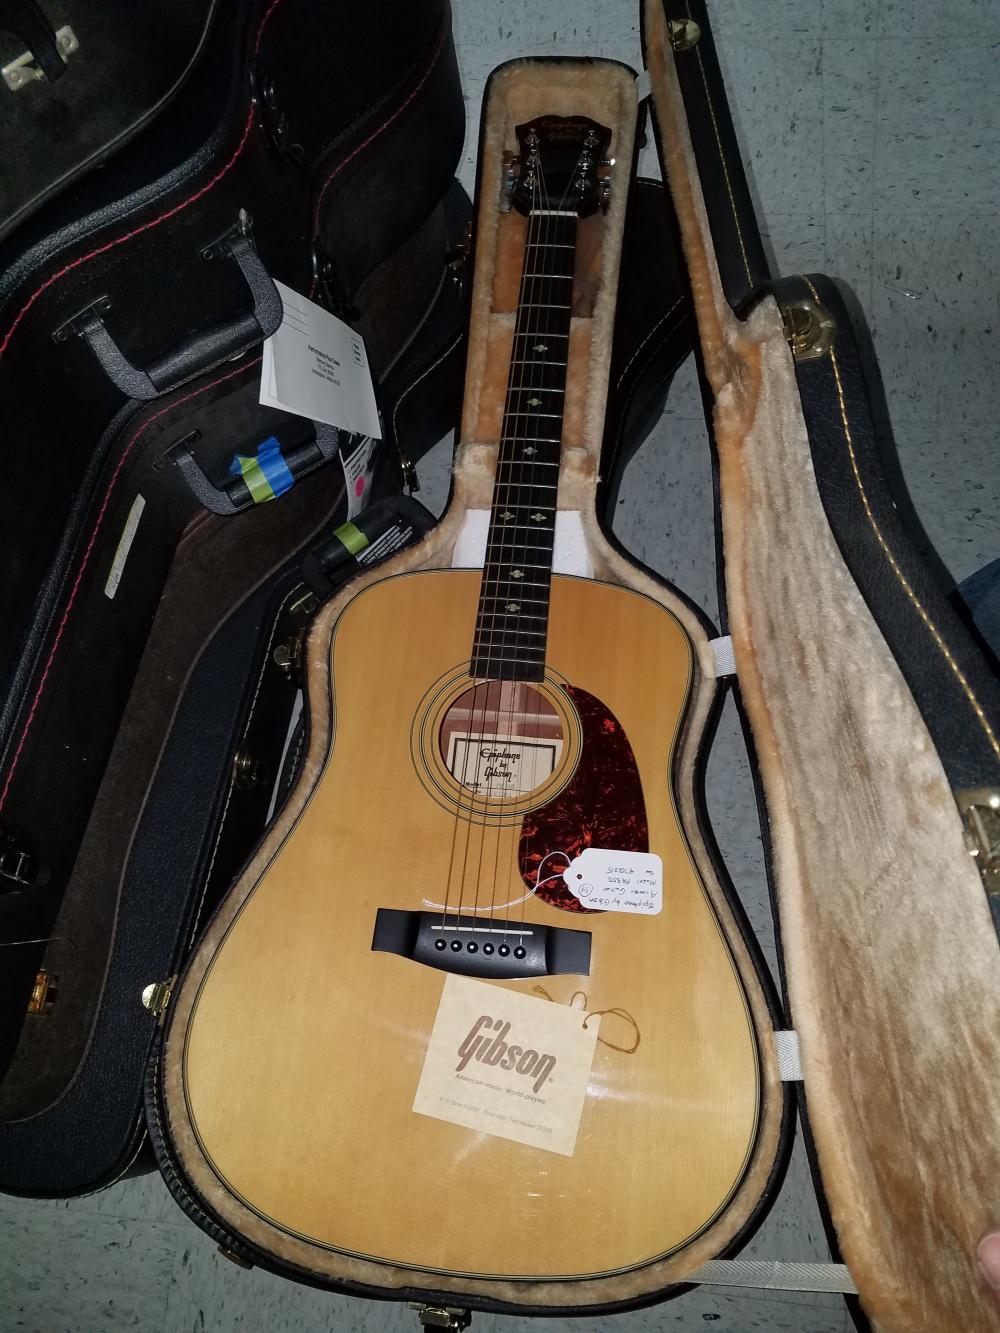 Epiphone by GIBSON Acoustic Guitar Model #PR350